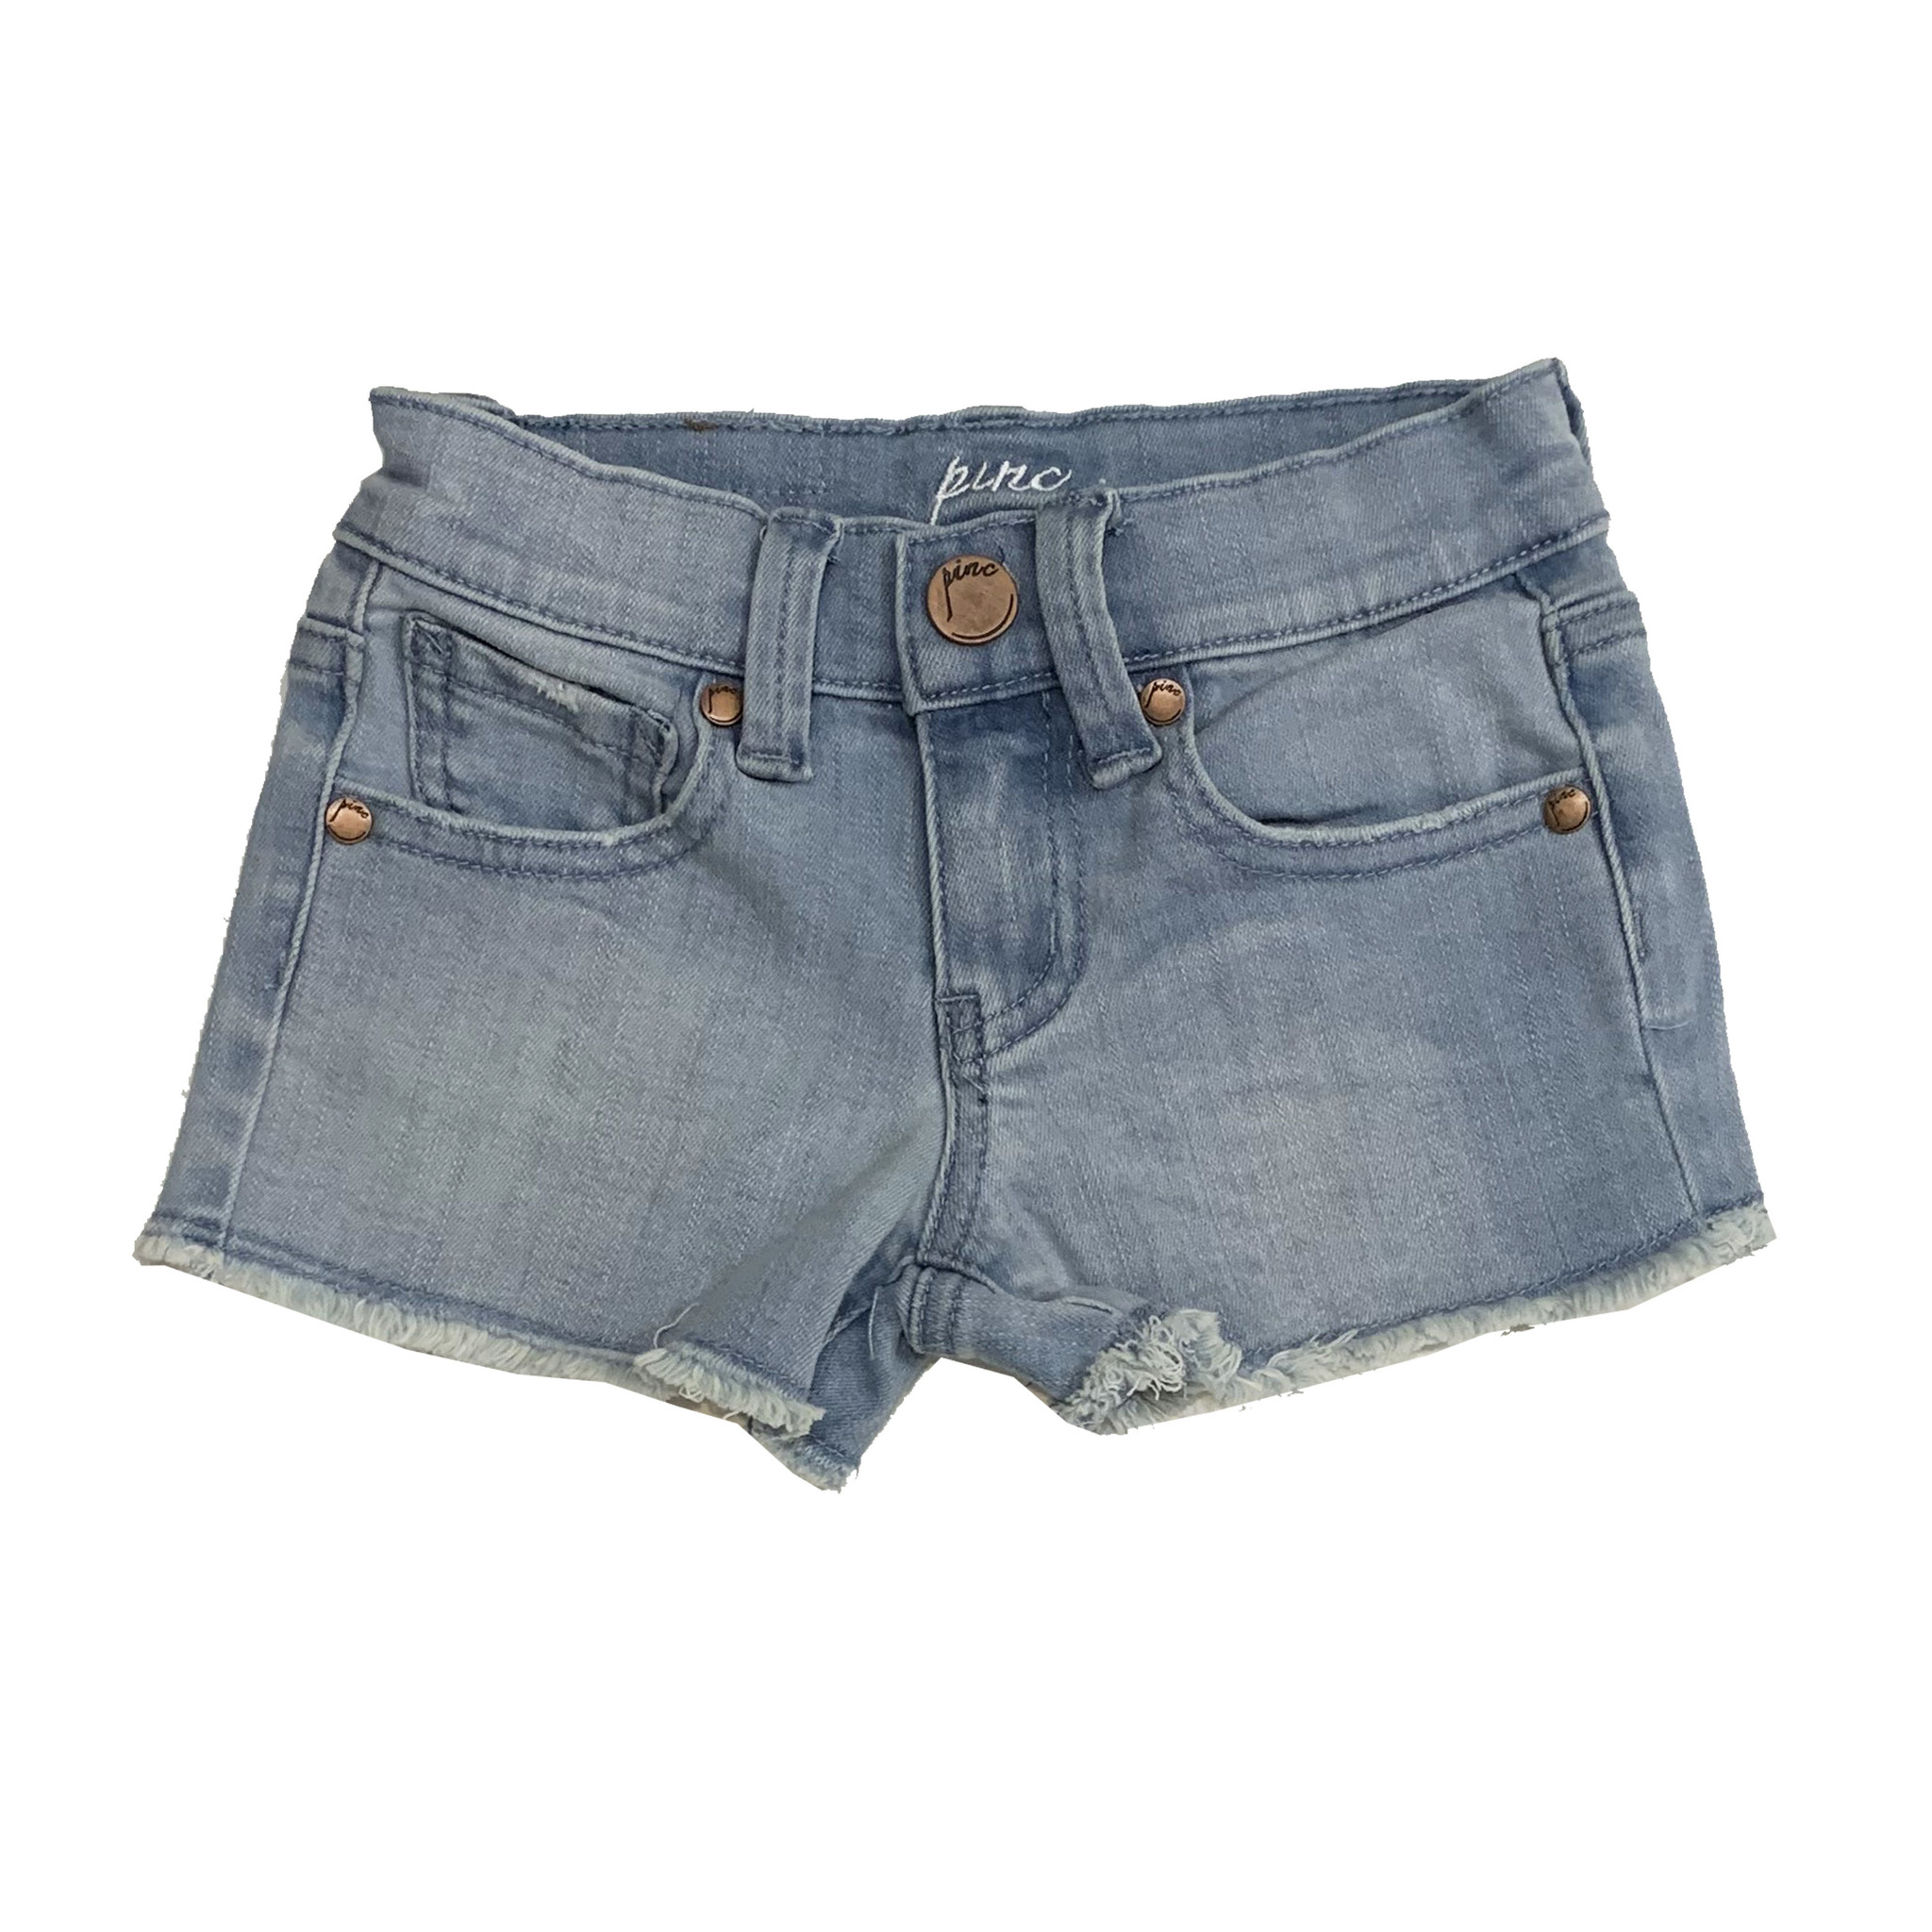 Pinc Light Wash Denim Shorts